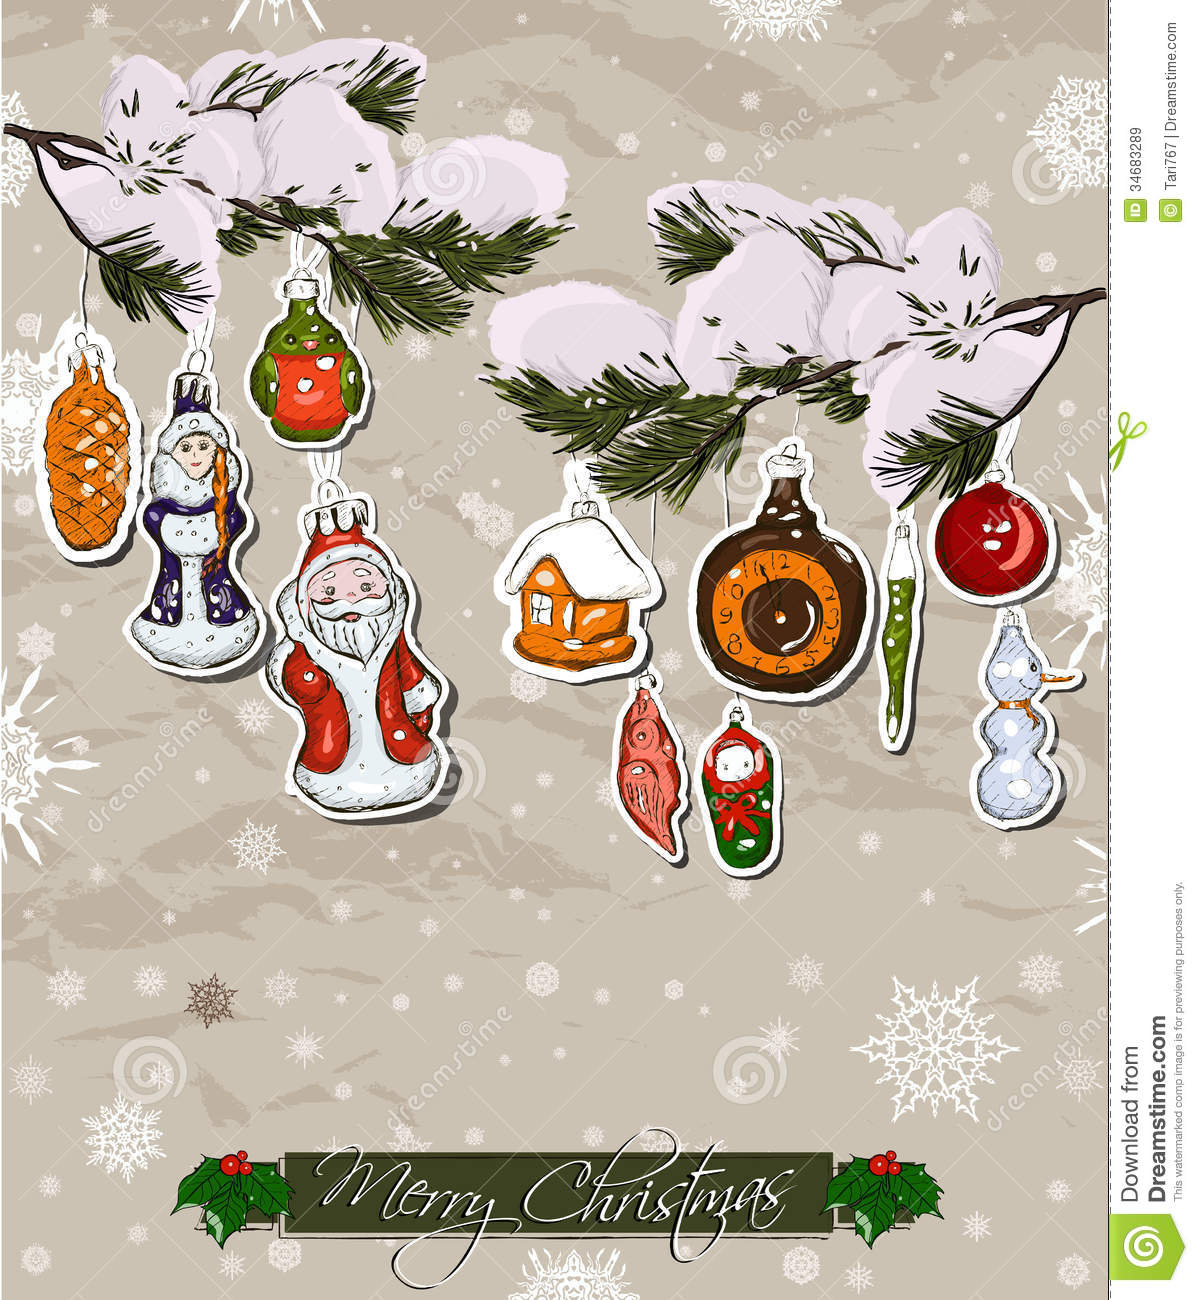 poster with vintage christmas decorations stock vector image 34683289. Black Bedroom Furniture Sets. Home Design Ideas